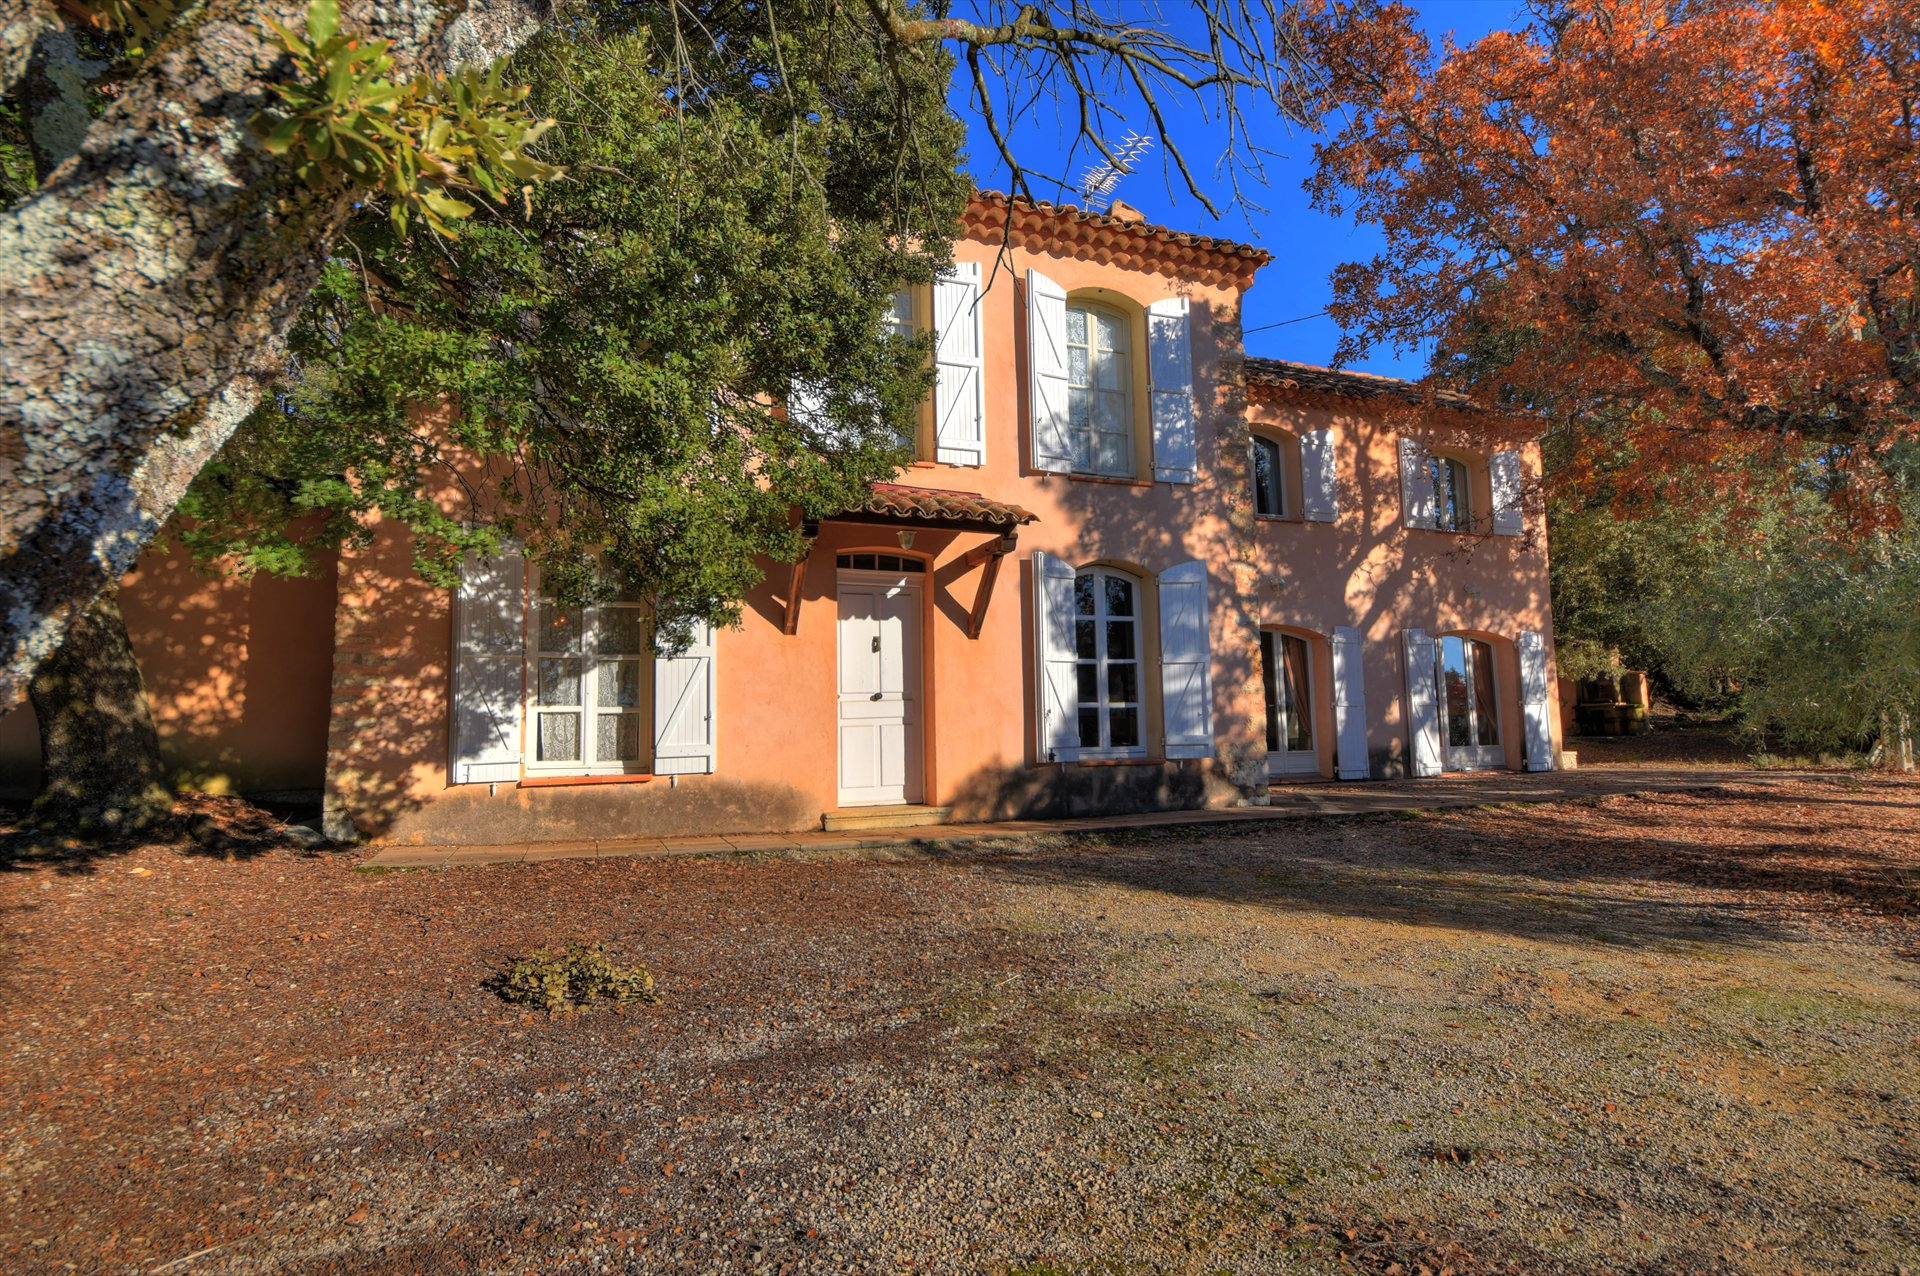 Super bastide for sale in Baudinard Sur Verdon Var Provence